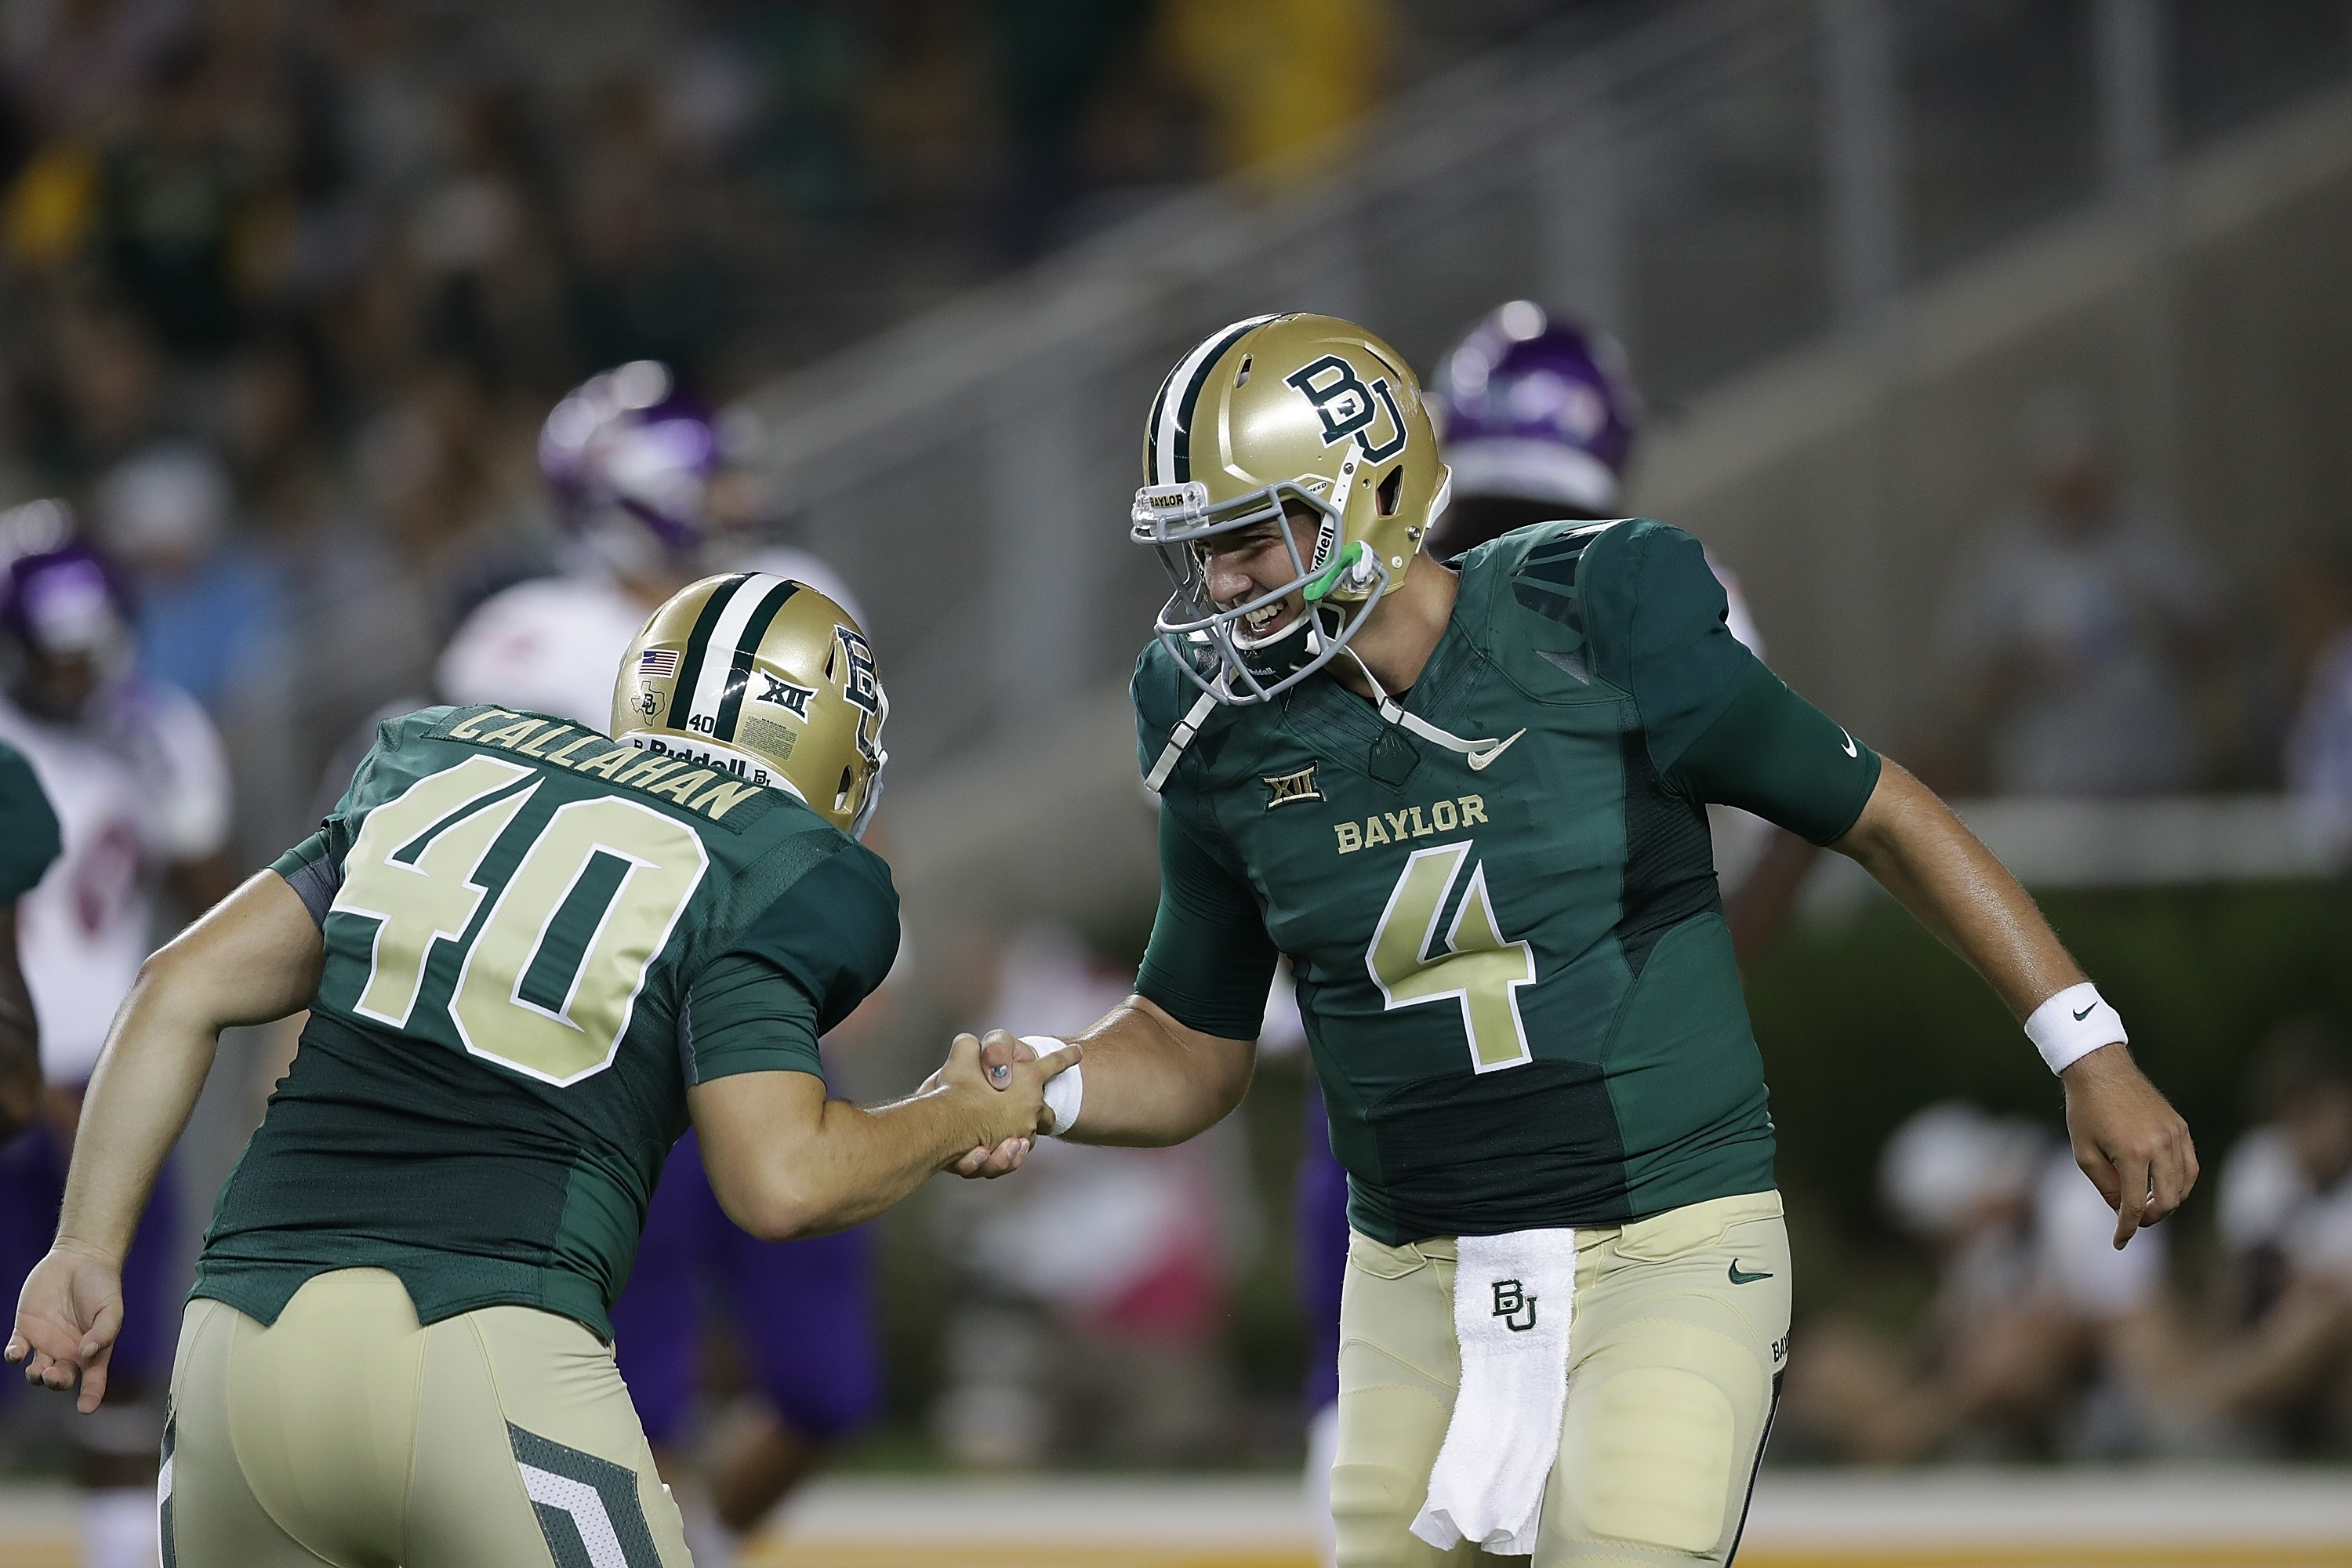 Baylor Feeling A Little Better About Depth Issues | Statesman U pertaining to Baylor Football Schedule 2016 48077